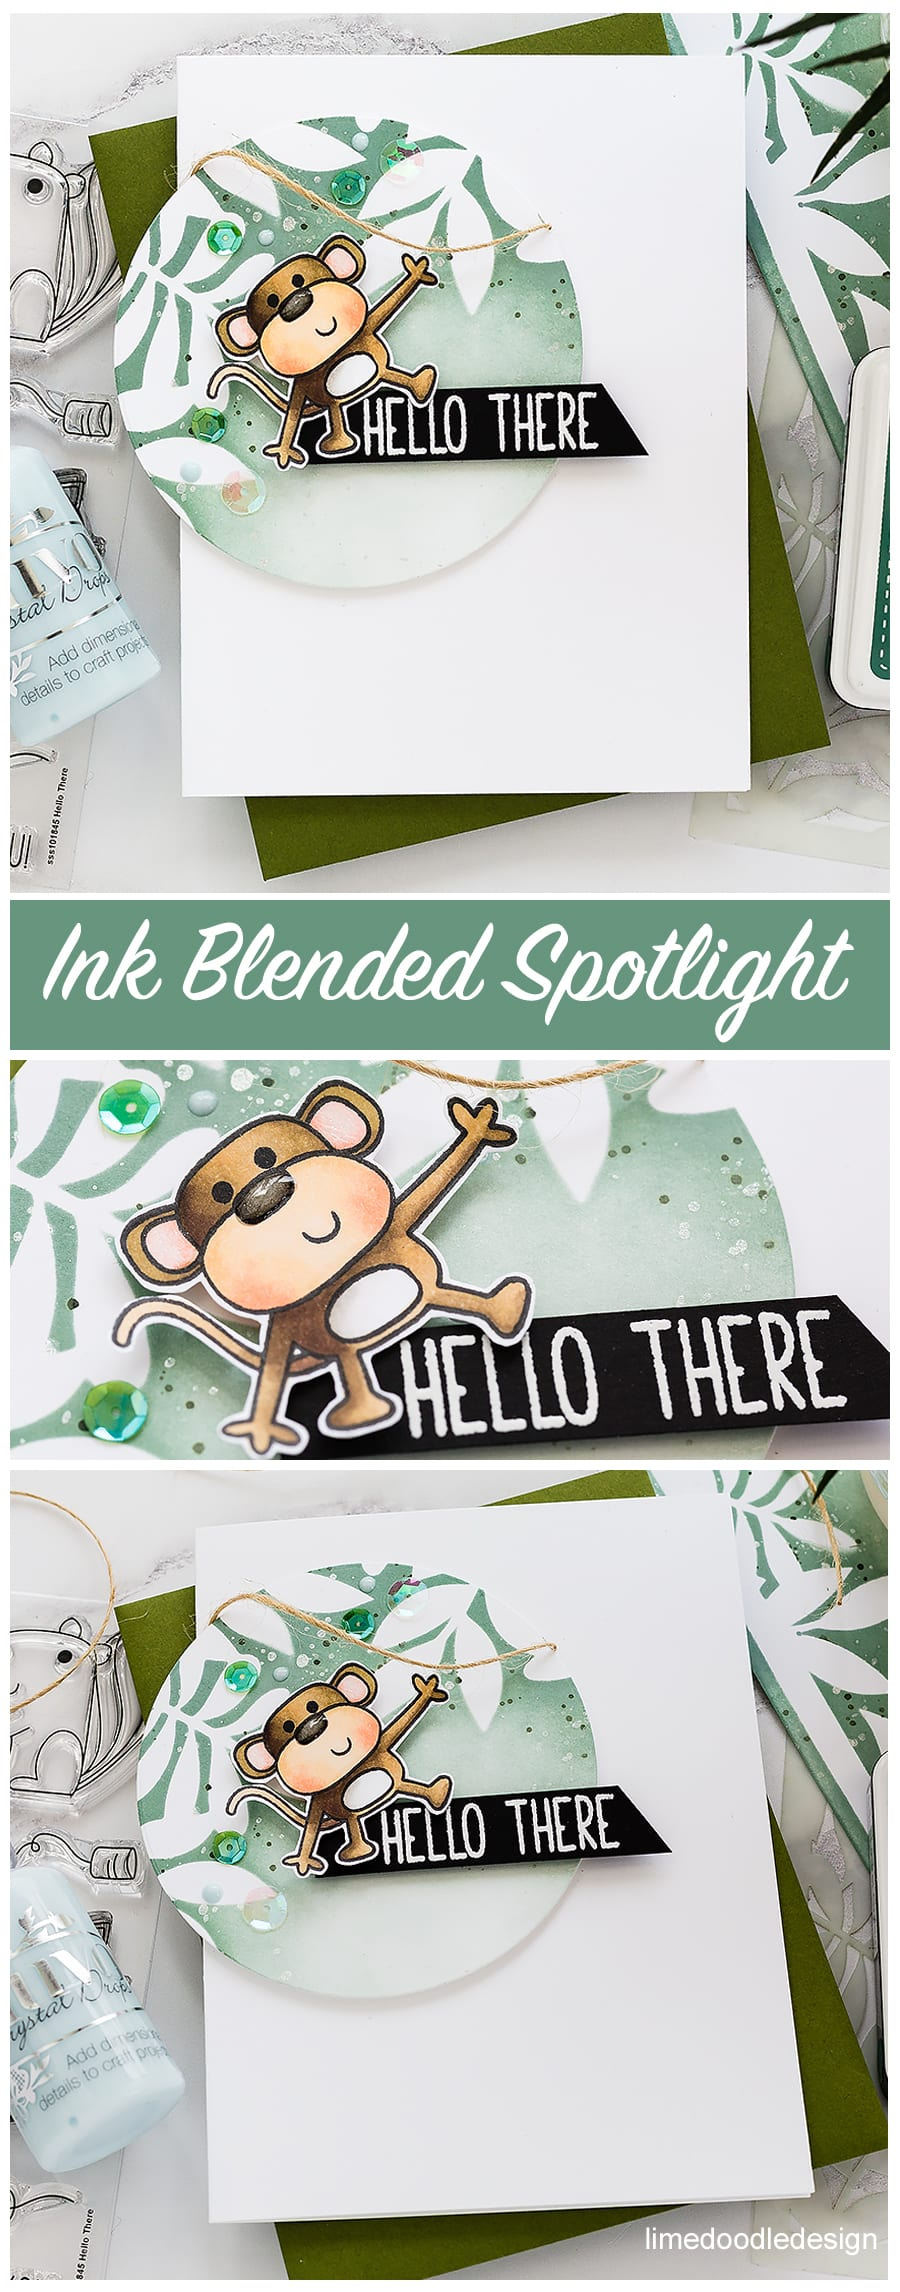 Spotlight ink blending, cute critters handmade cards by Debby Hughes using Simon Says Stamp products. Find out more here: http://limedoodledesign.com/2018/05/video-spotlight-ink-blended-backgrounds/